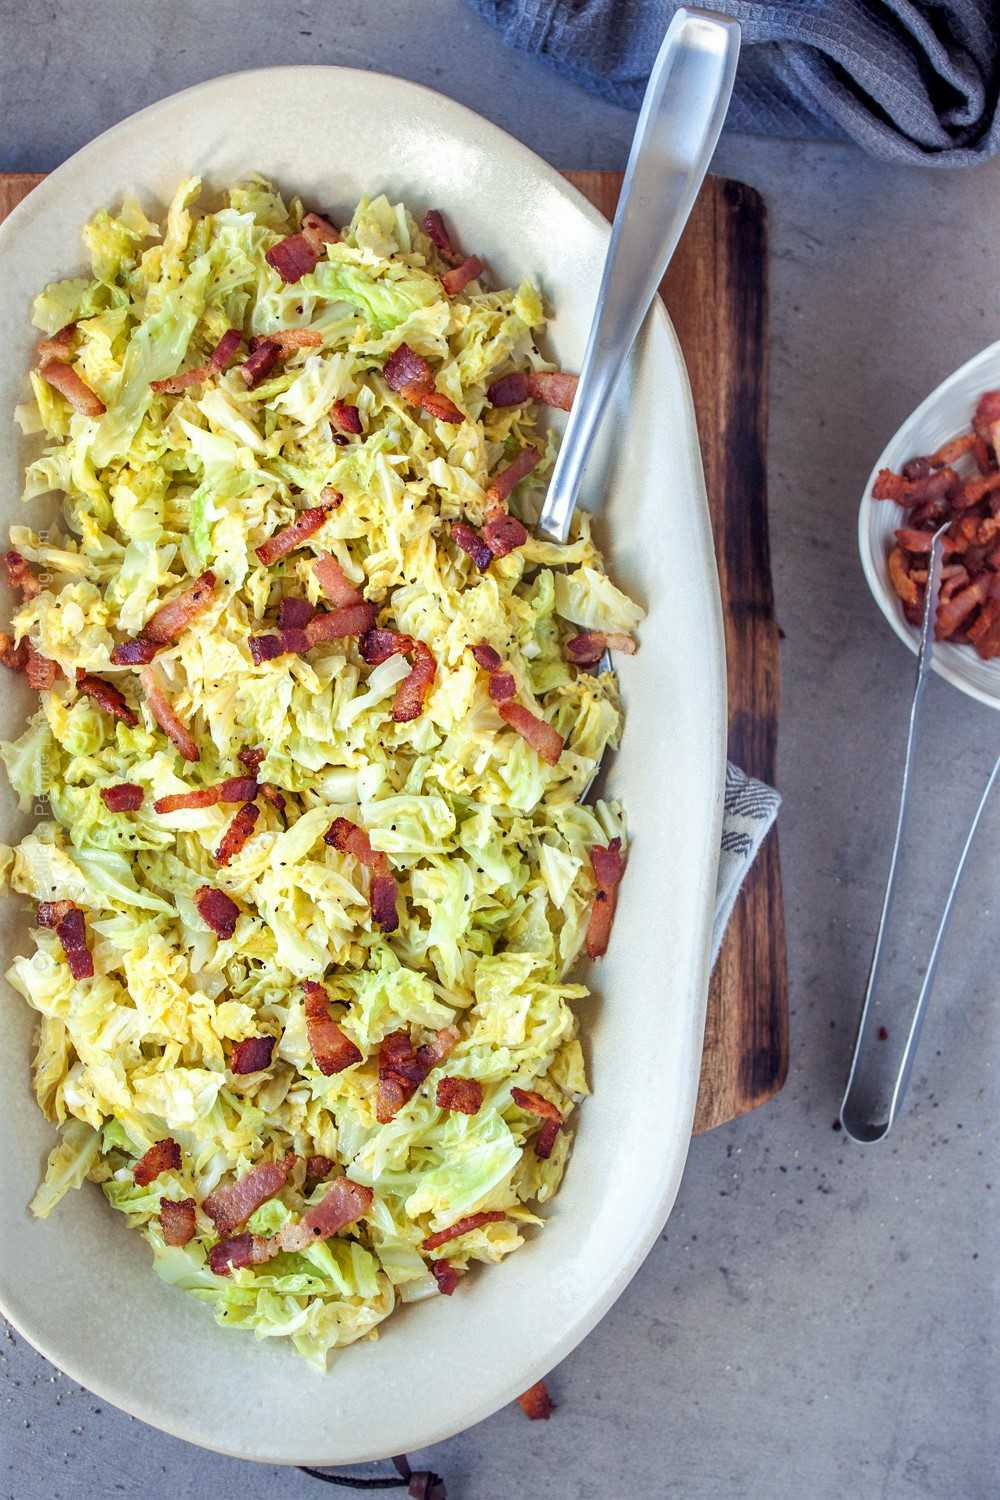 Platter with savoy butter cabbage presented with crispy bacon bits for extra flavor.